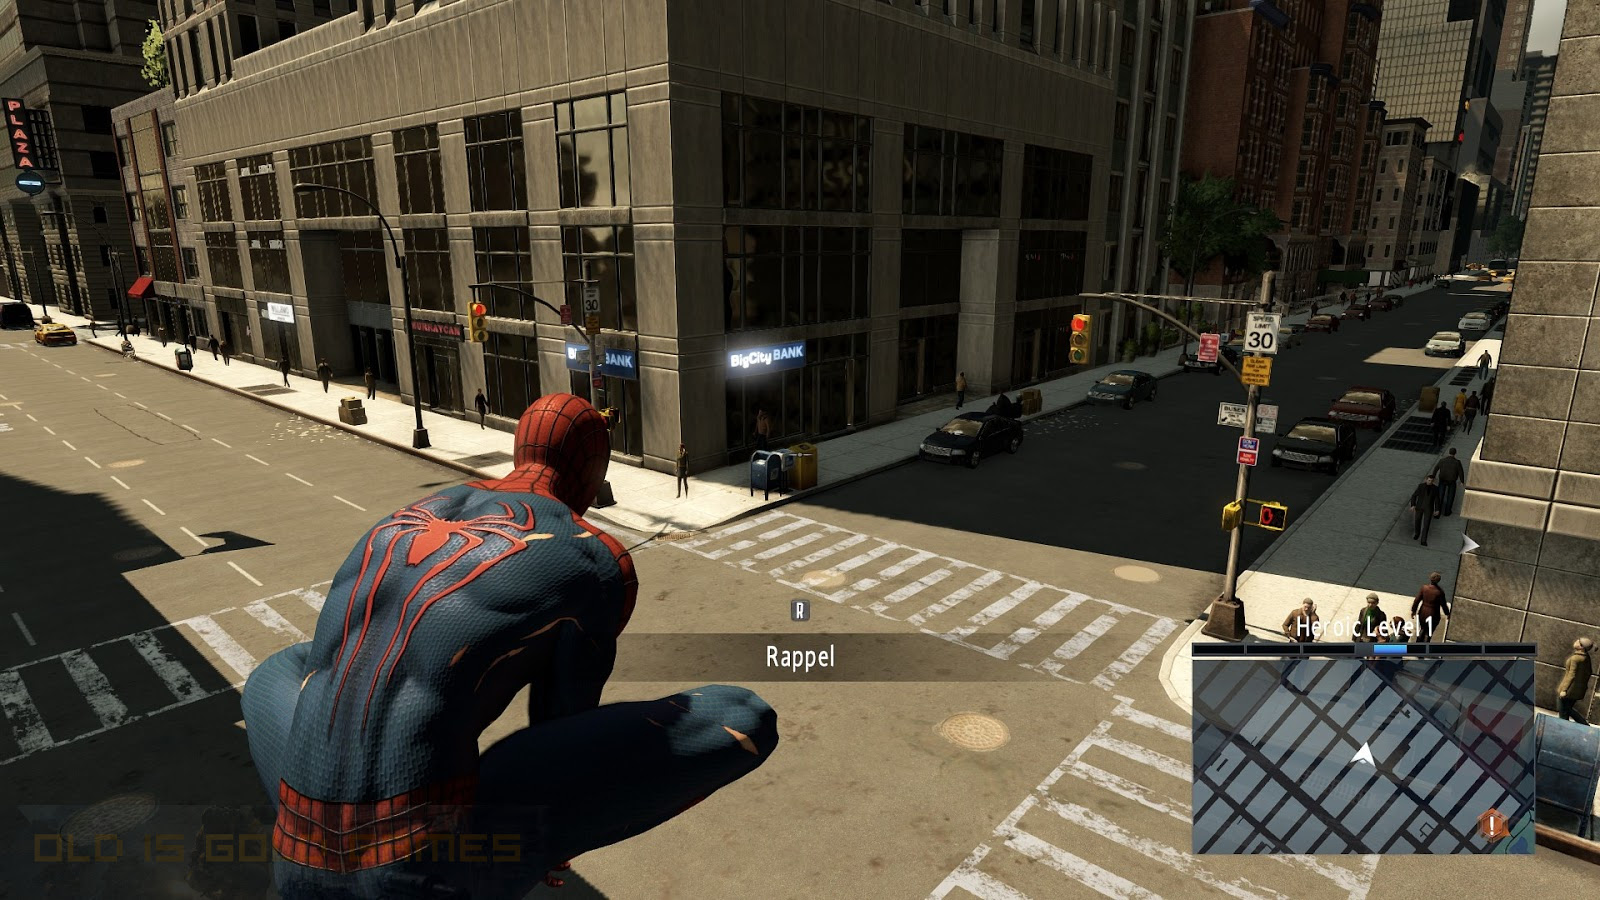 Here Is How To Download And Install Sipder-Man 3 For Free On PC